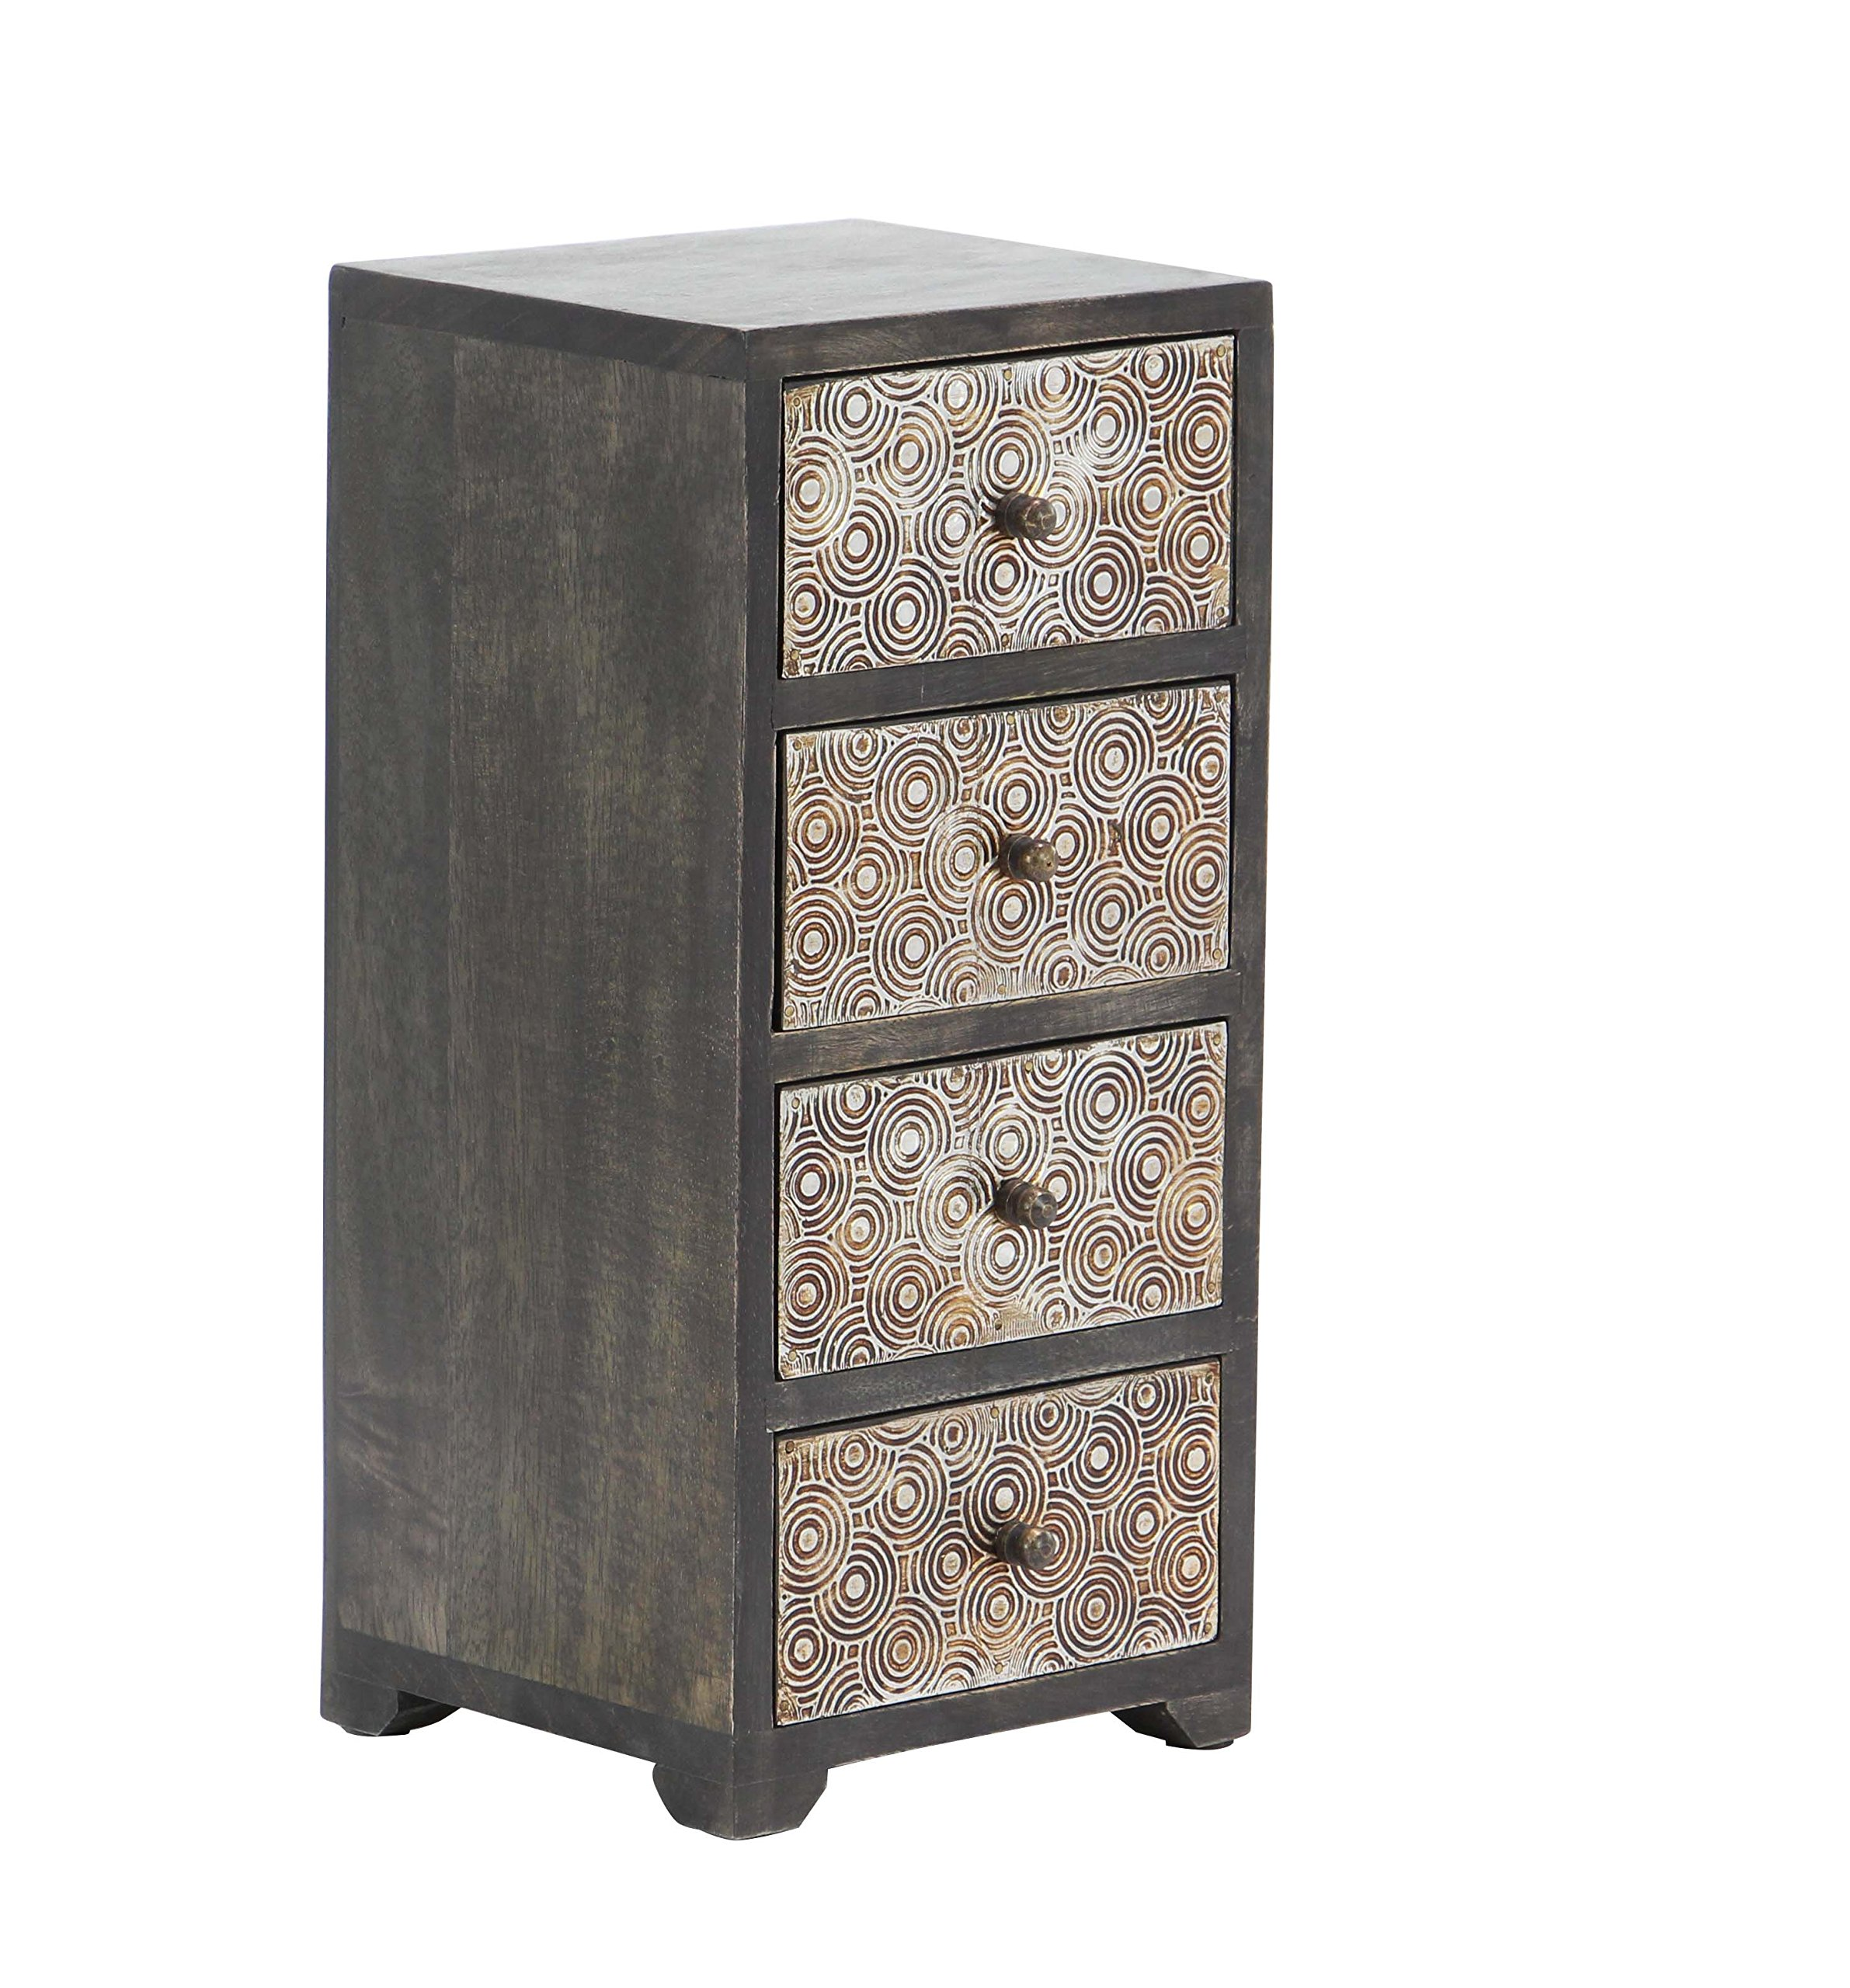 Deco 79 28791 Jewelry Chest Dark Brown, Tarnished Brass by Deco 79